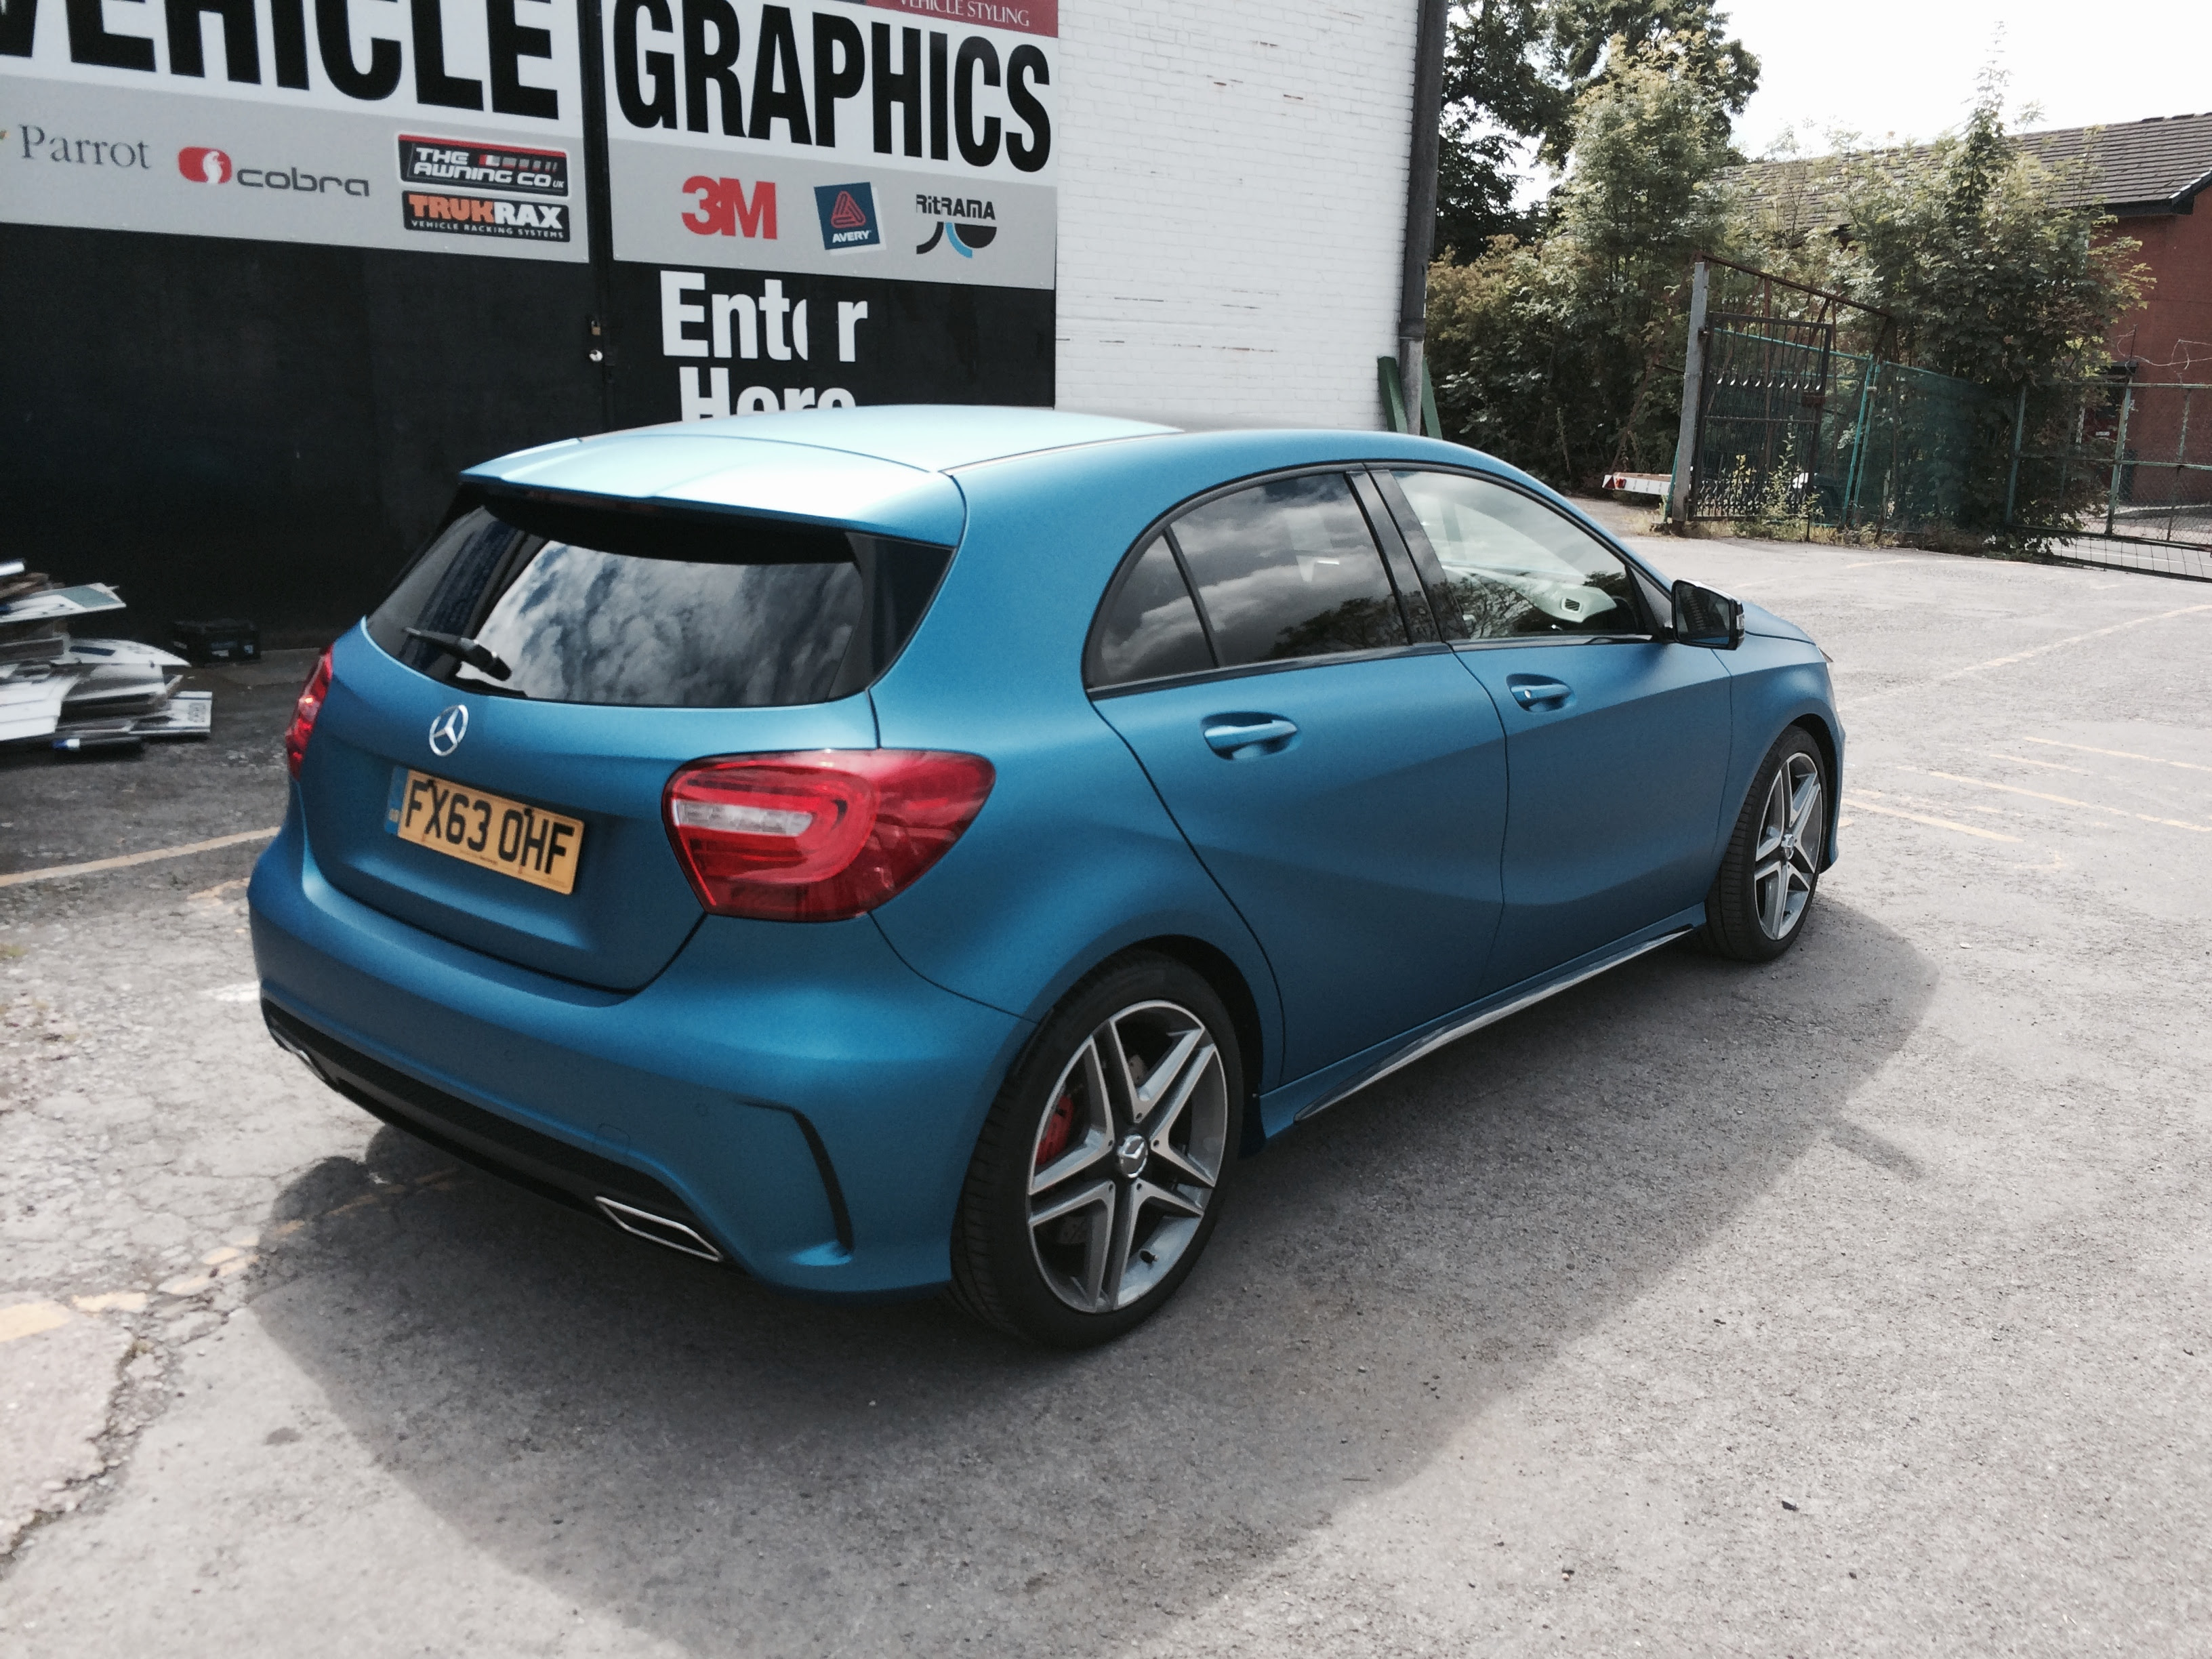 Mercedes A45 AMG Wrapped in 3M Matte Metallic Blue ...